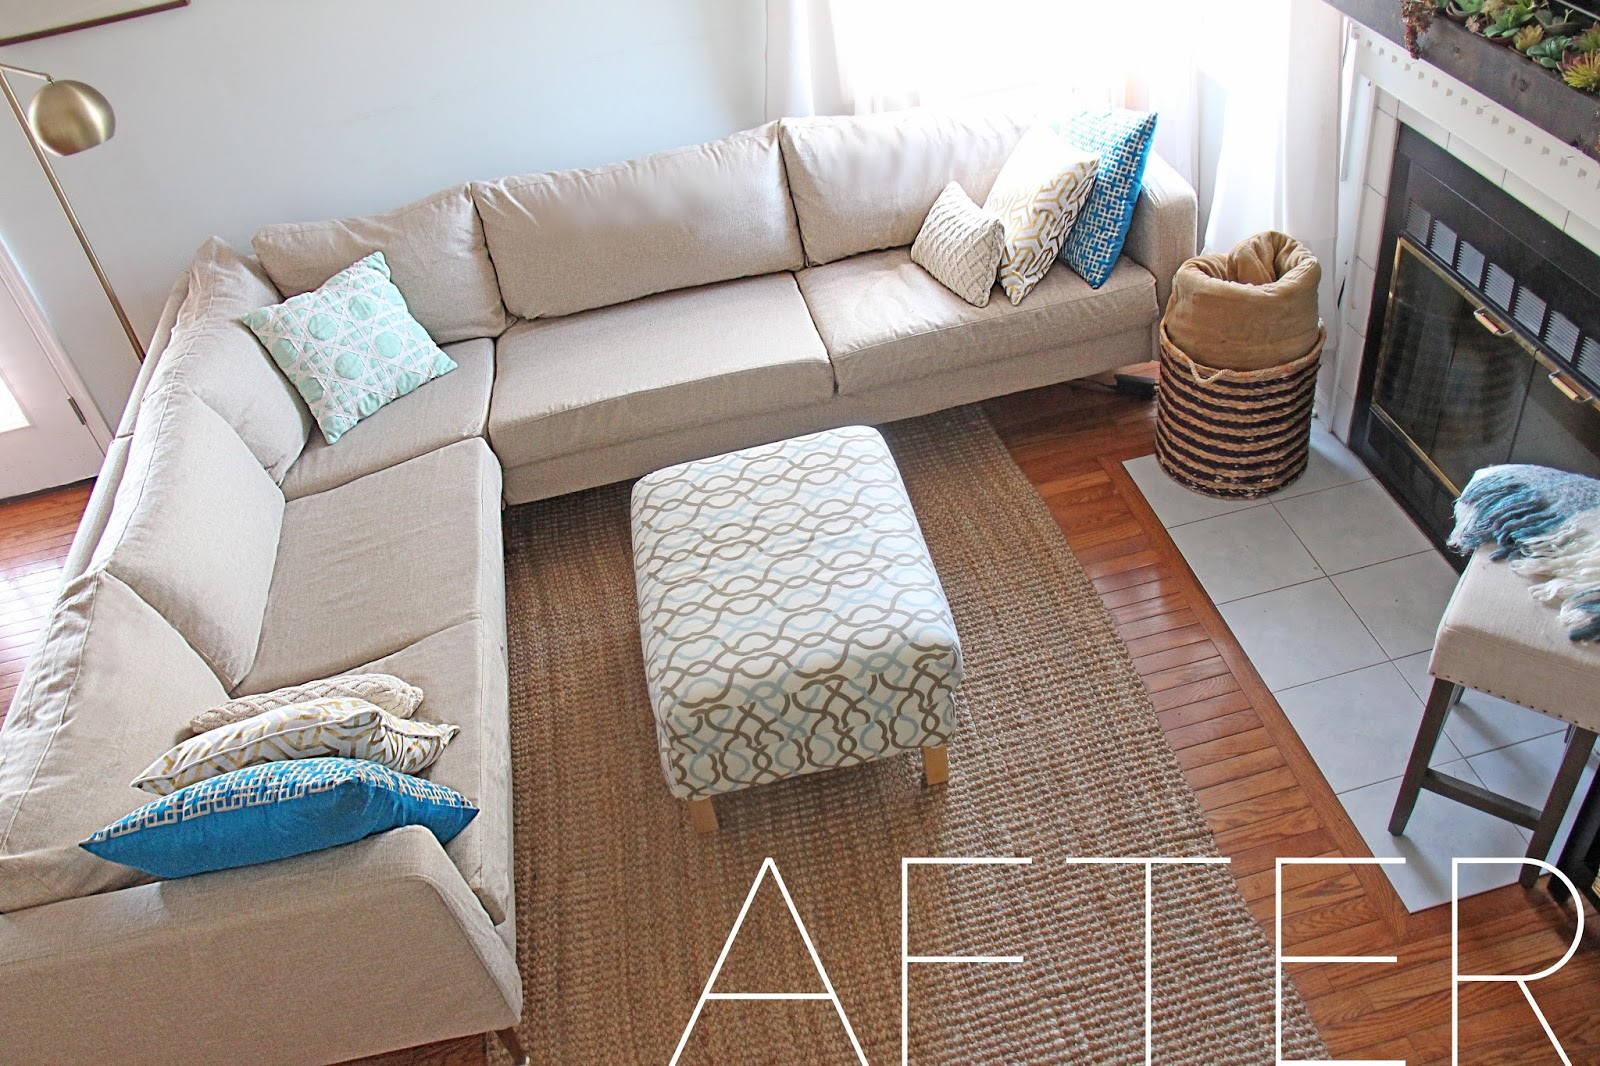 online sofa cover material best set deals in bangalore grosgrain finally affordable ikea slipcovers